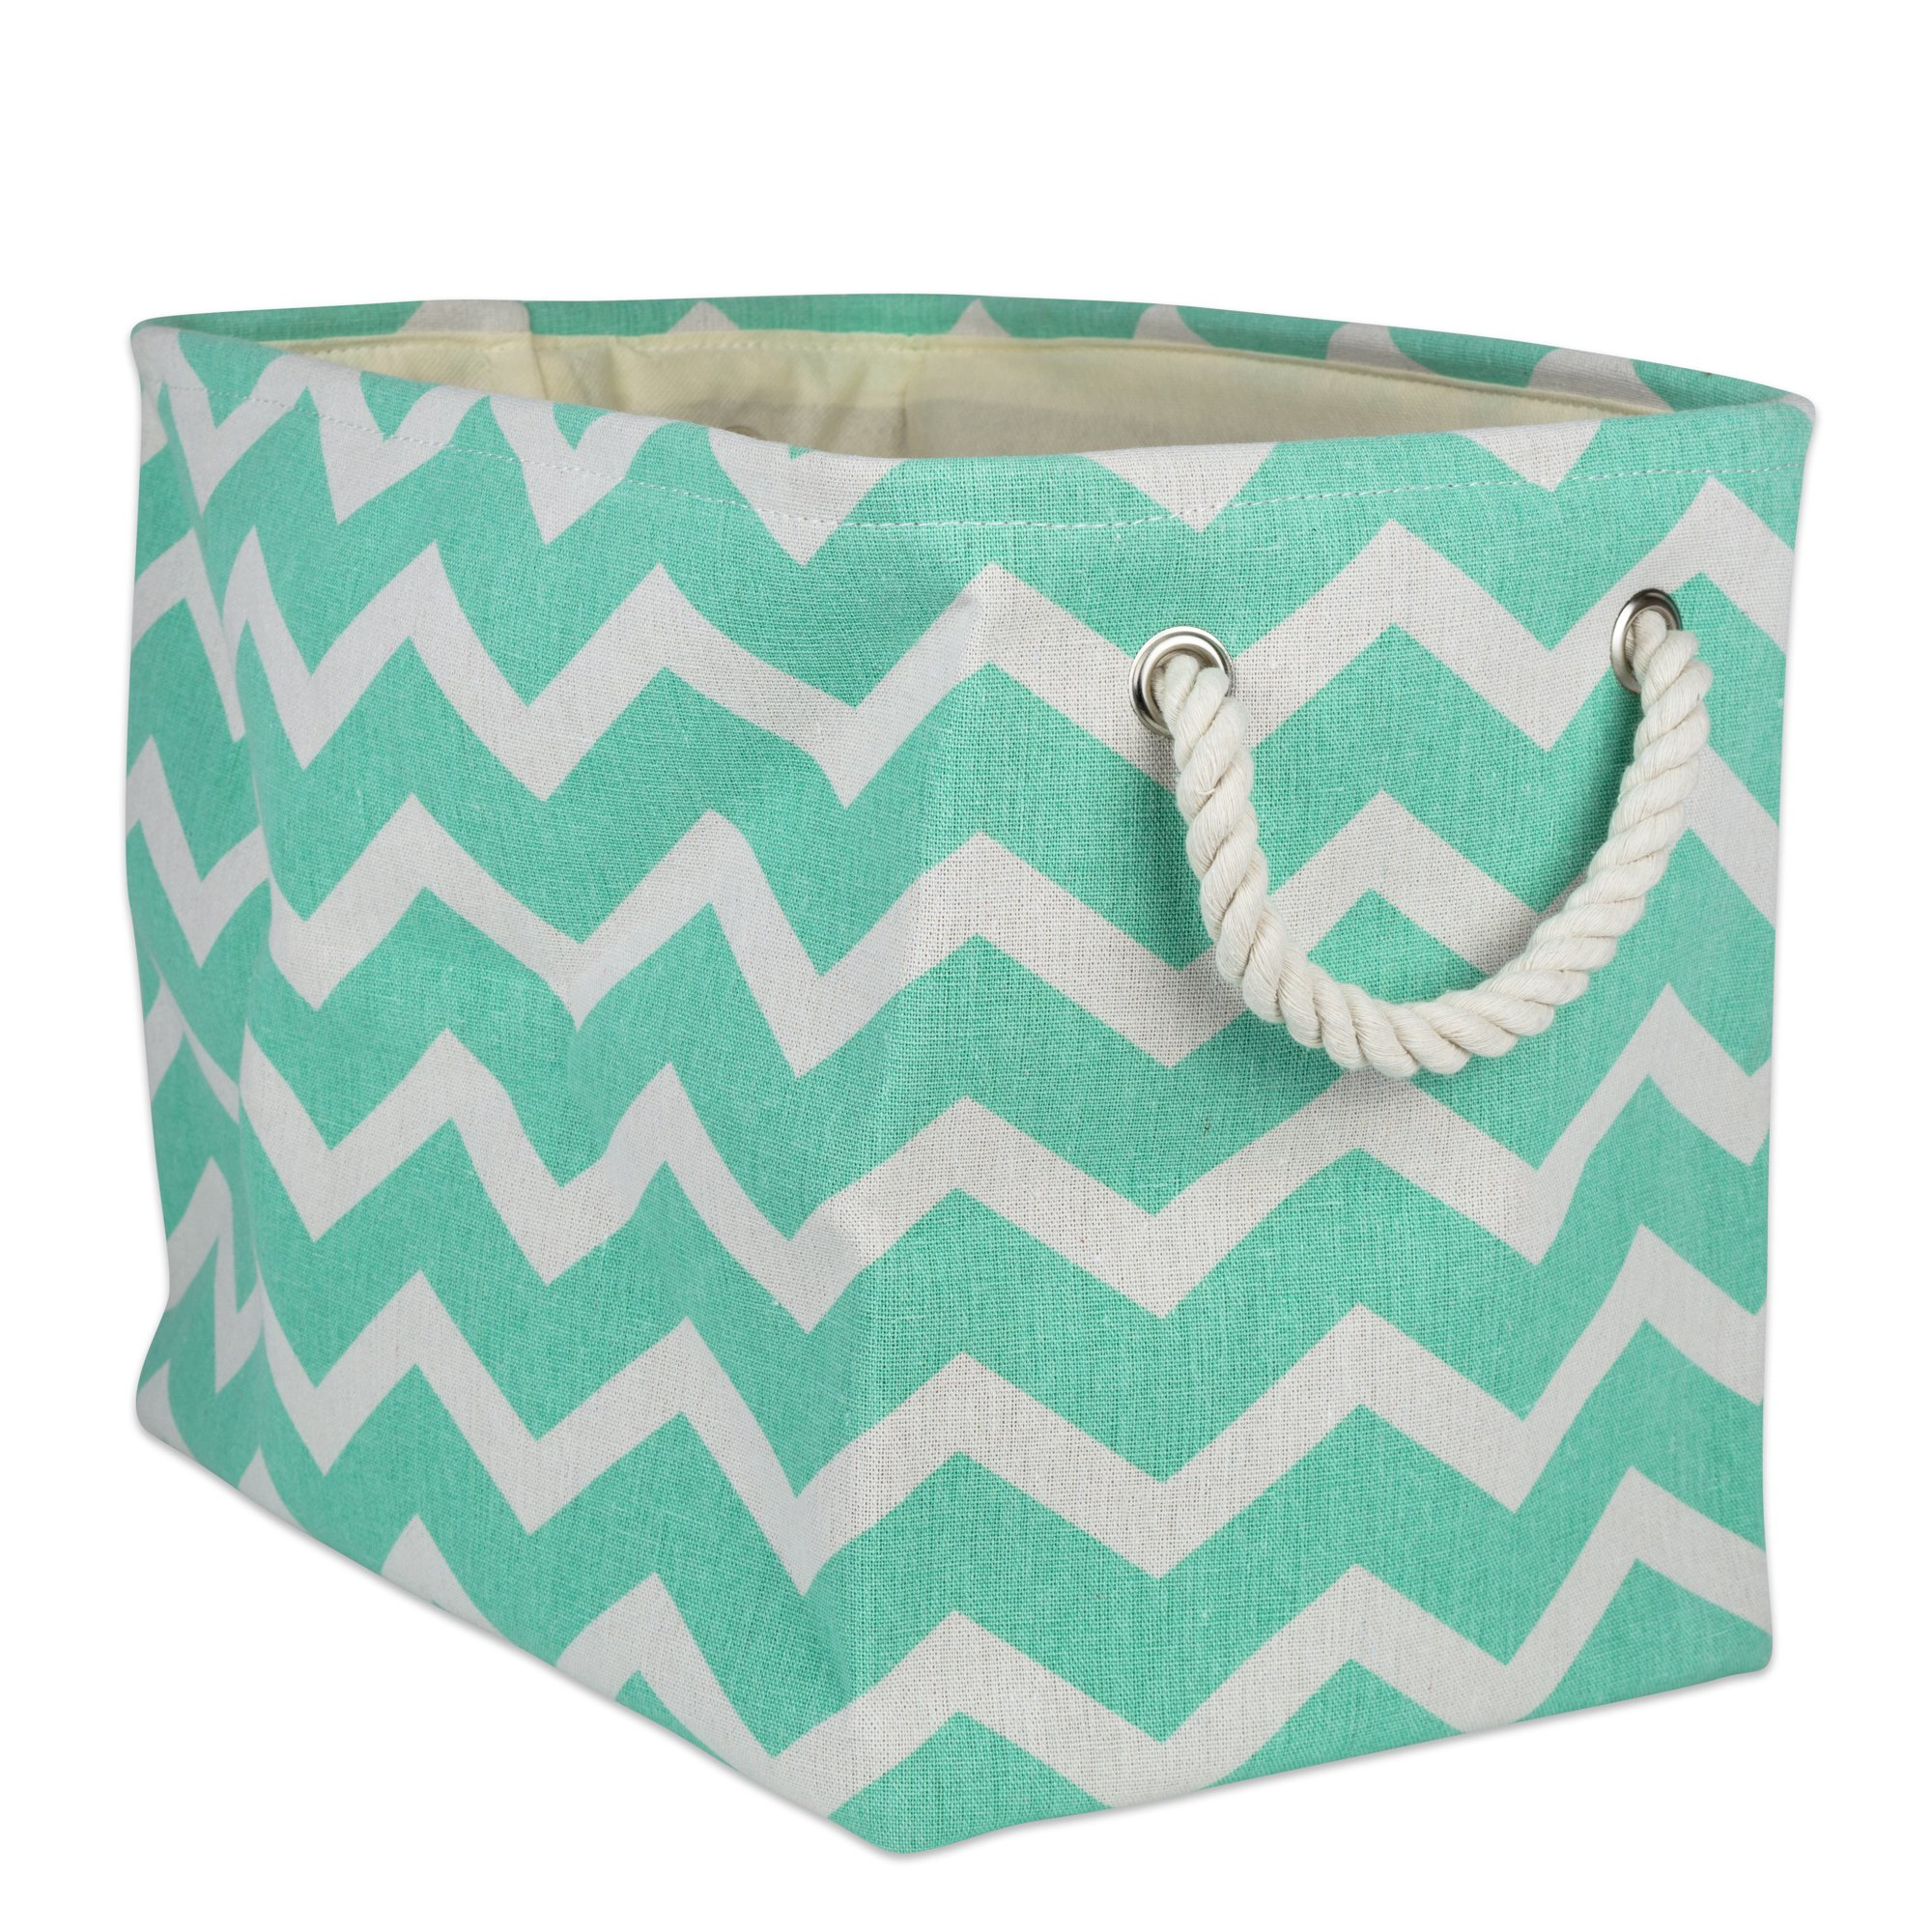 DII Collapsible Polyester Storage Basket or Bin with Durable Cotton Handles, Home Organizer Solution for Office, Bedroom, Closet, Toys, & Laundry(Medium - 16x10x12''), Aqua Chevron